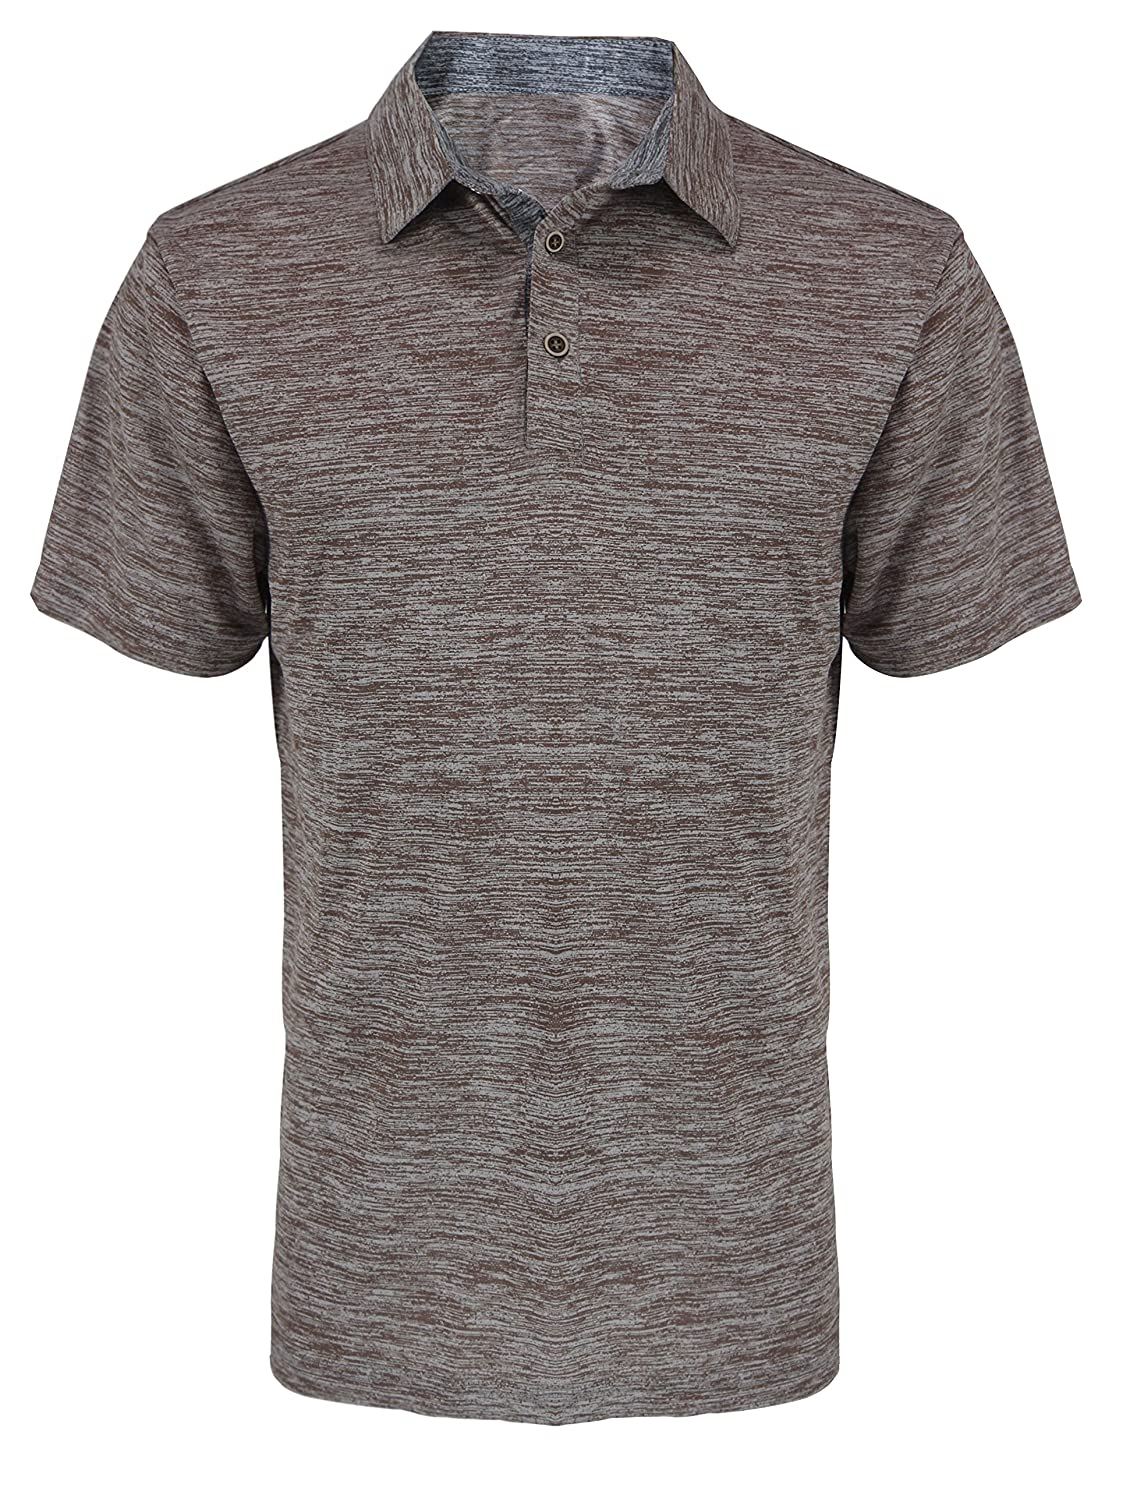 Mens T Shirts Short Sleeve Casual Dry Fit Lightweight Moisture Wicking Tees